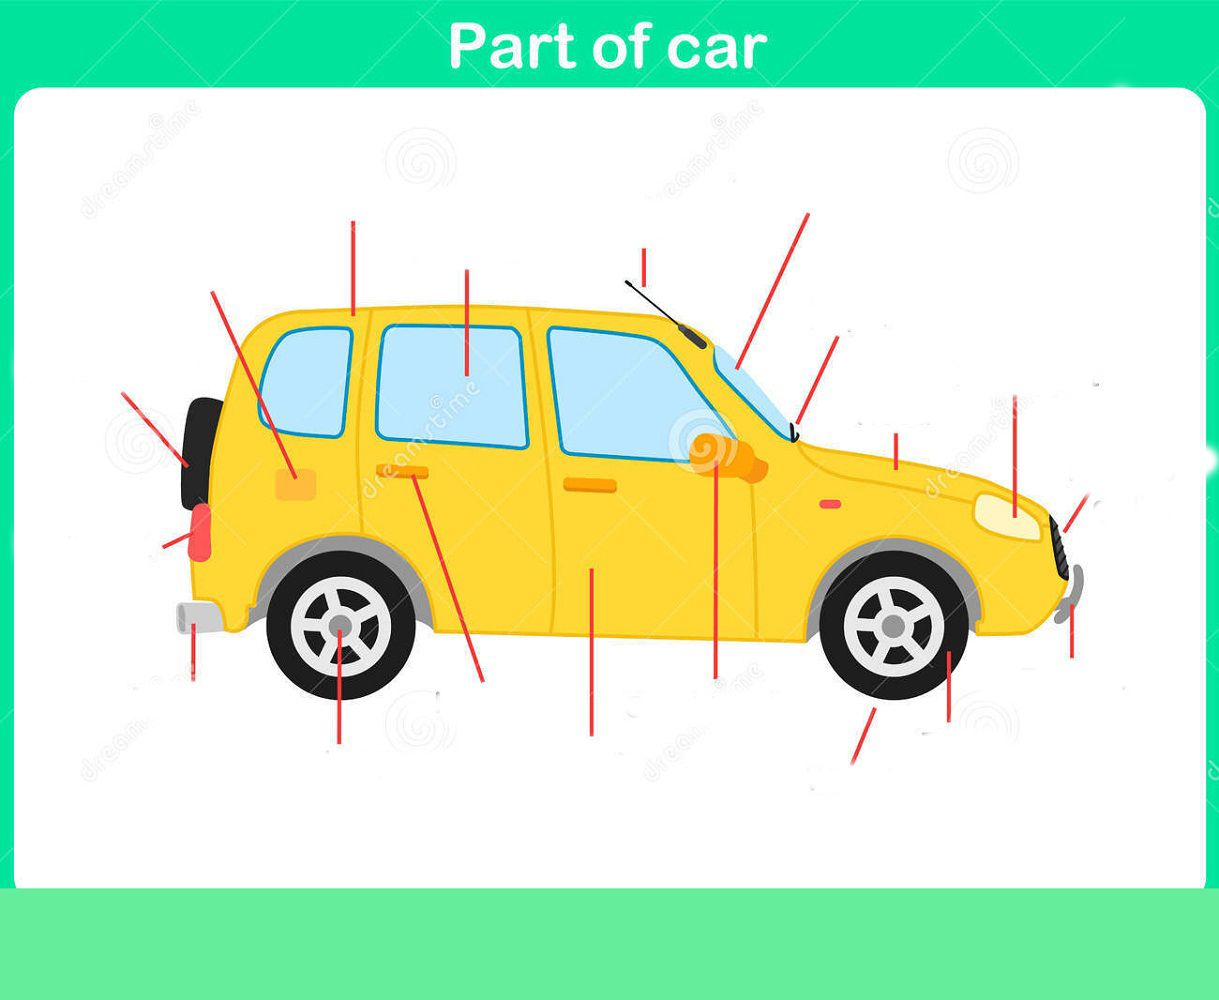 car diagram without labels | Heritage , American ... on car diagram without labels, car diagram with titles, car drawing with labels, car parts with labels, car model with labels, motor car with labels, car diagram with parts labeled,